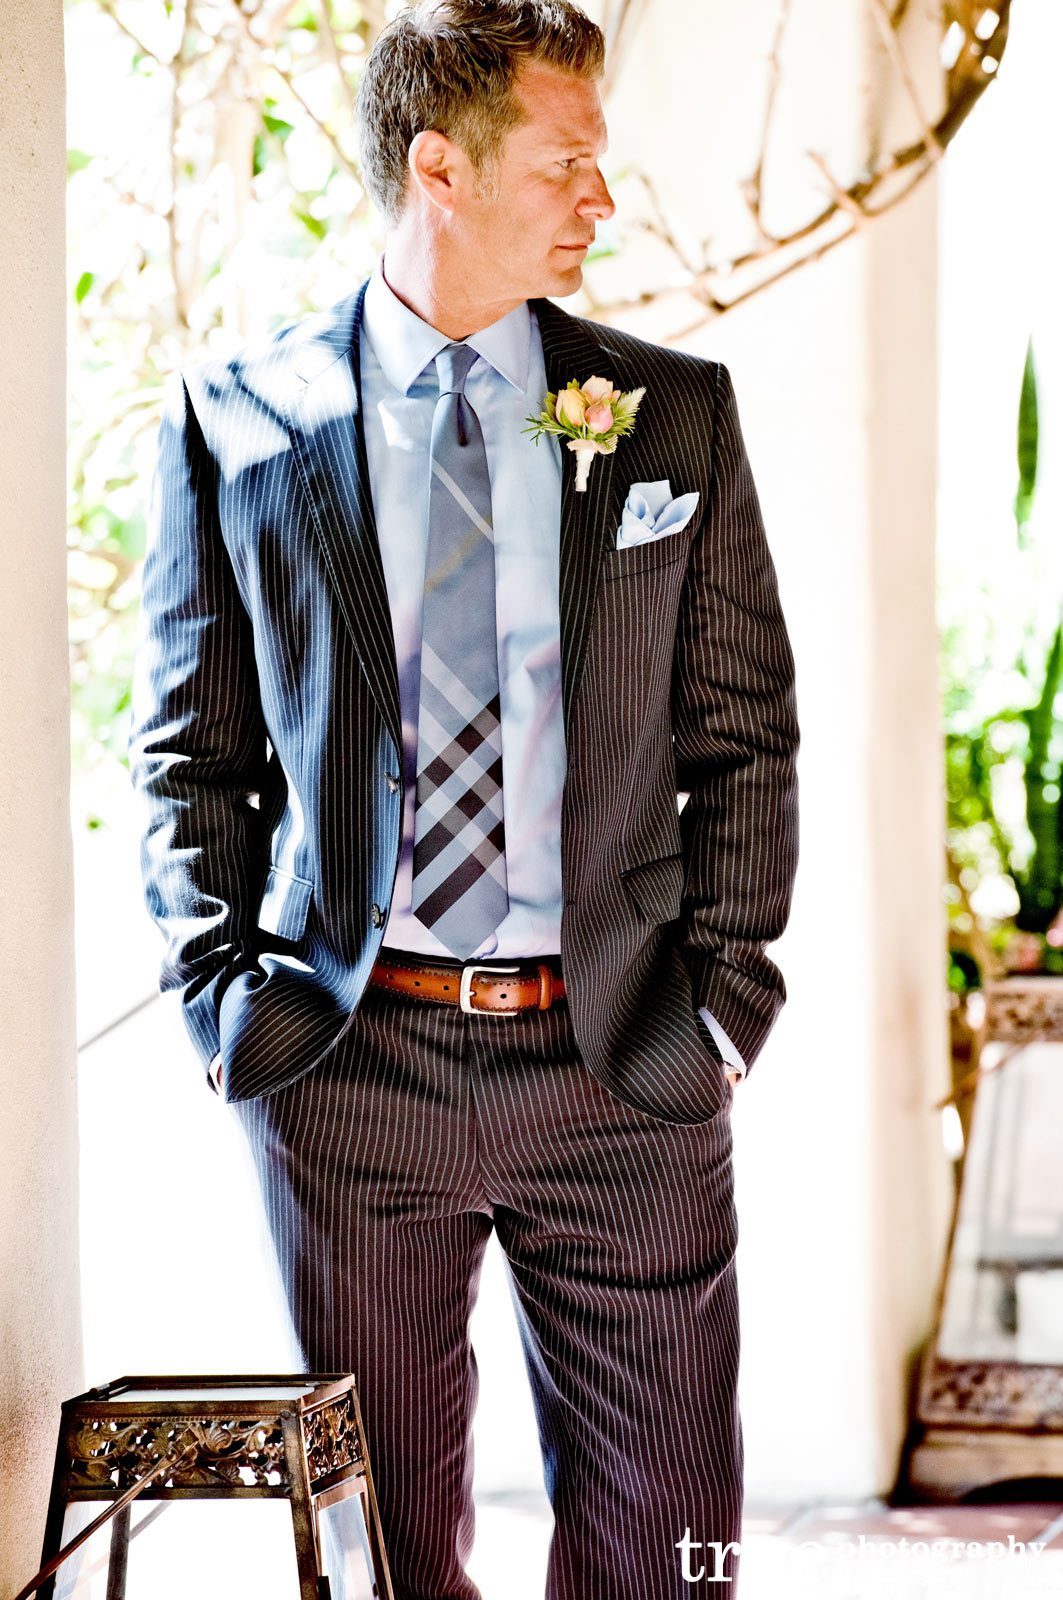 how to dress for a casual wedding male october wedding dresses Groom Wedding Fashion